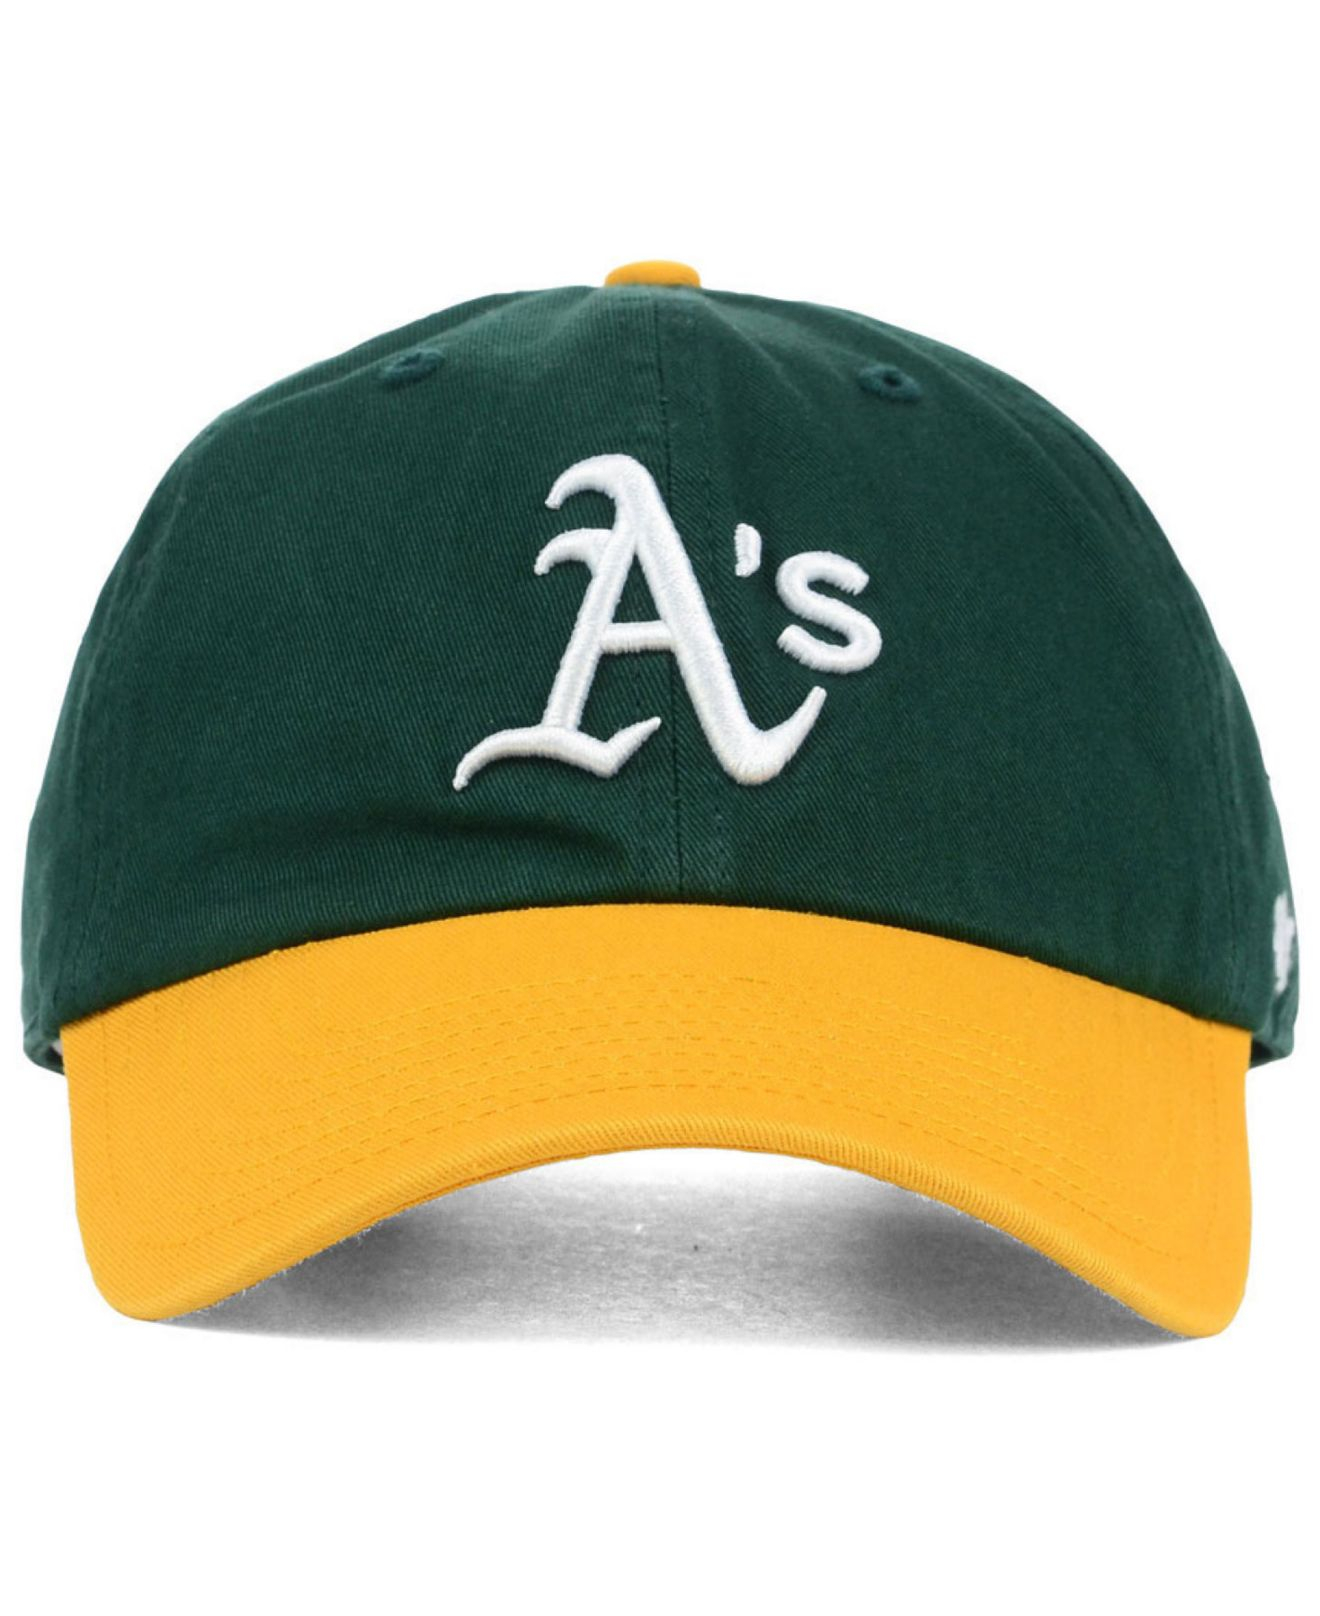 b02a1f4d25d7bd new arrivals oakland athletics cap 7a4e0 5f028